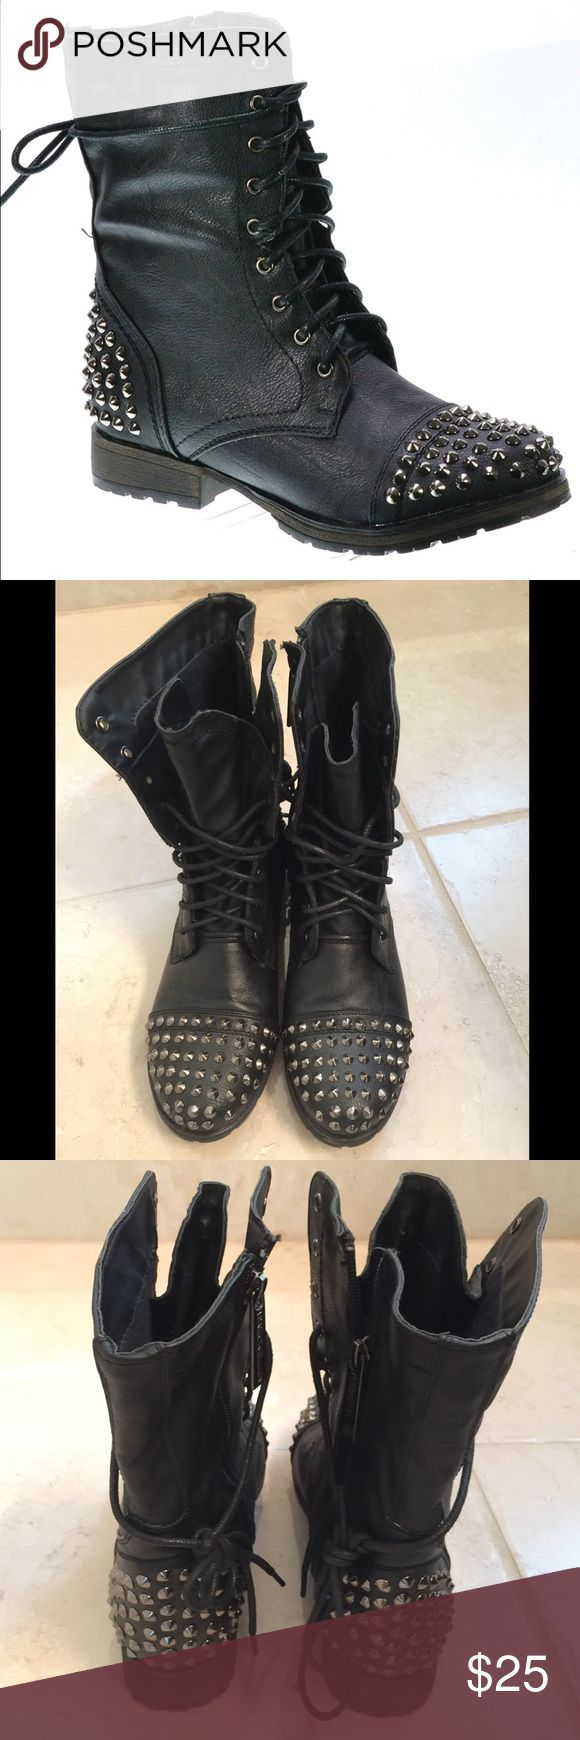 Breckelles Black Studded Combat Boots Worn about 4x, good condition, smoke free home, no marks or stains noted. Super cute/stylish pair of combat boots that can be dressed up or paired casually. No studs missing. Breckelles Shoes Combat & Moto Boots